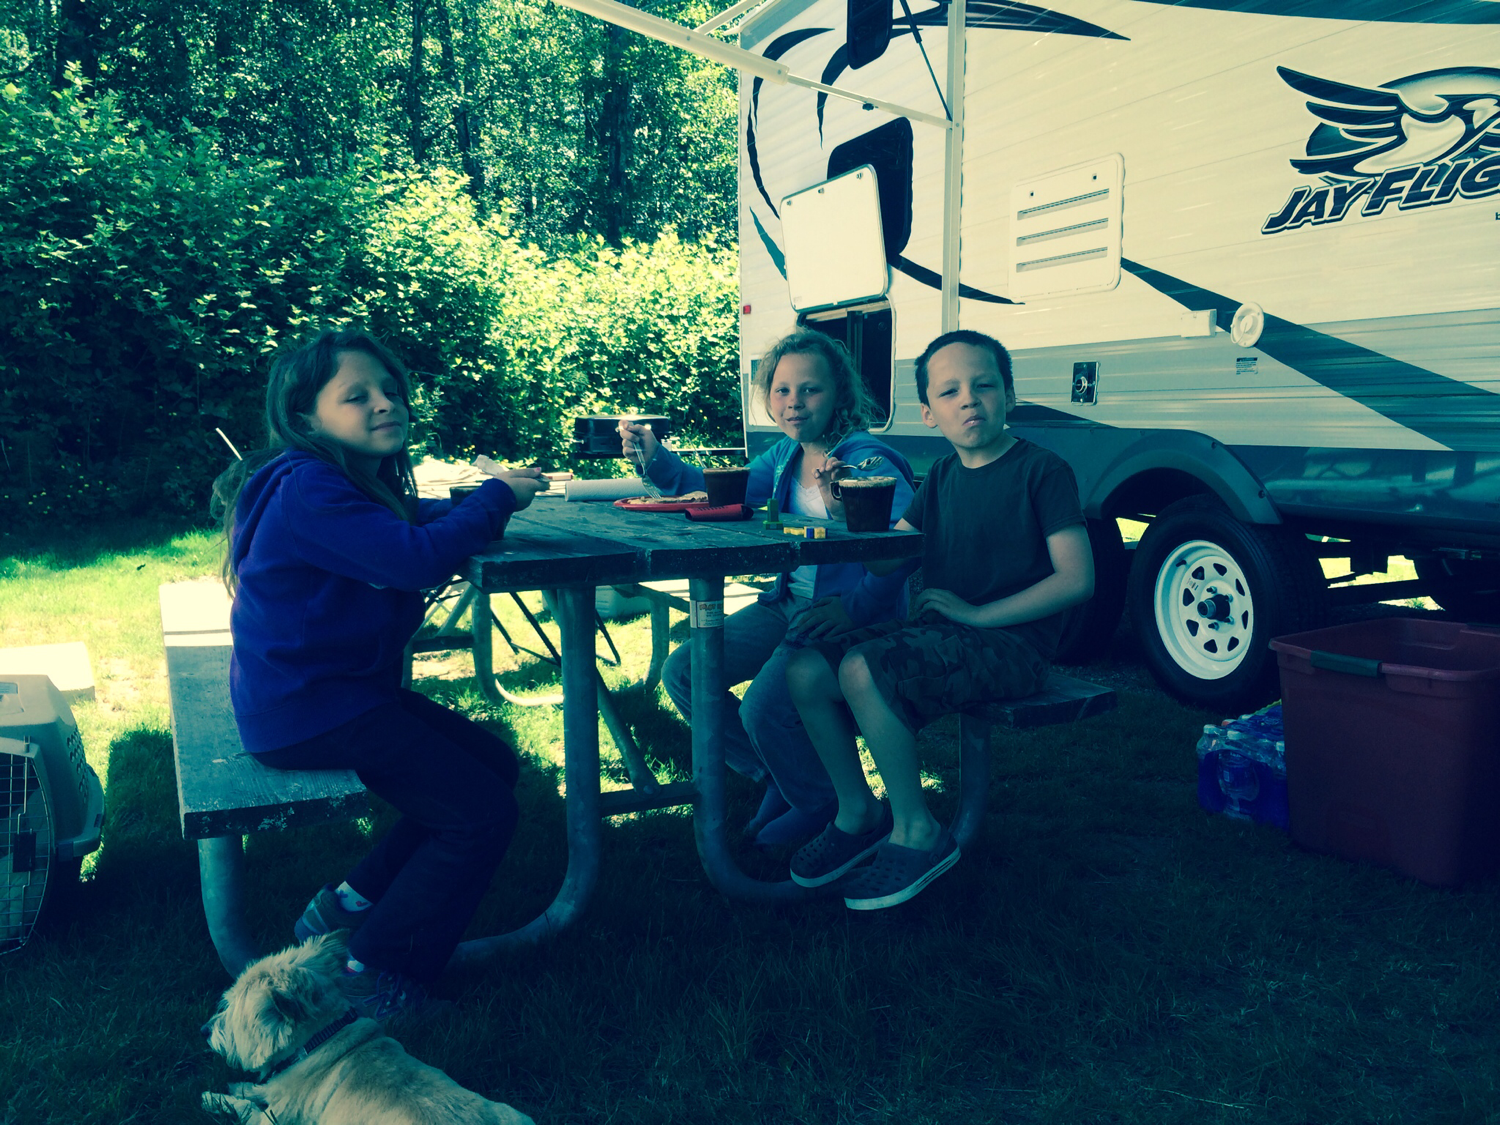 Poulsbo Rv Parks Reviews And Photos Rvparking Com